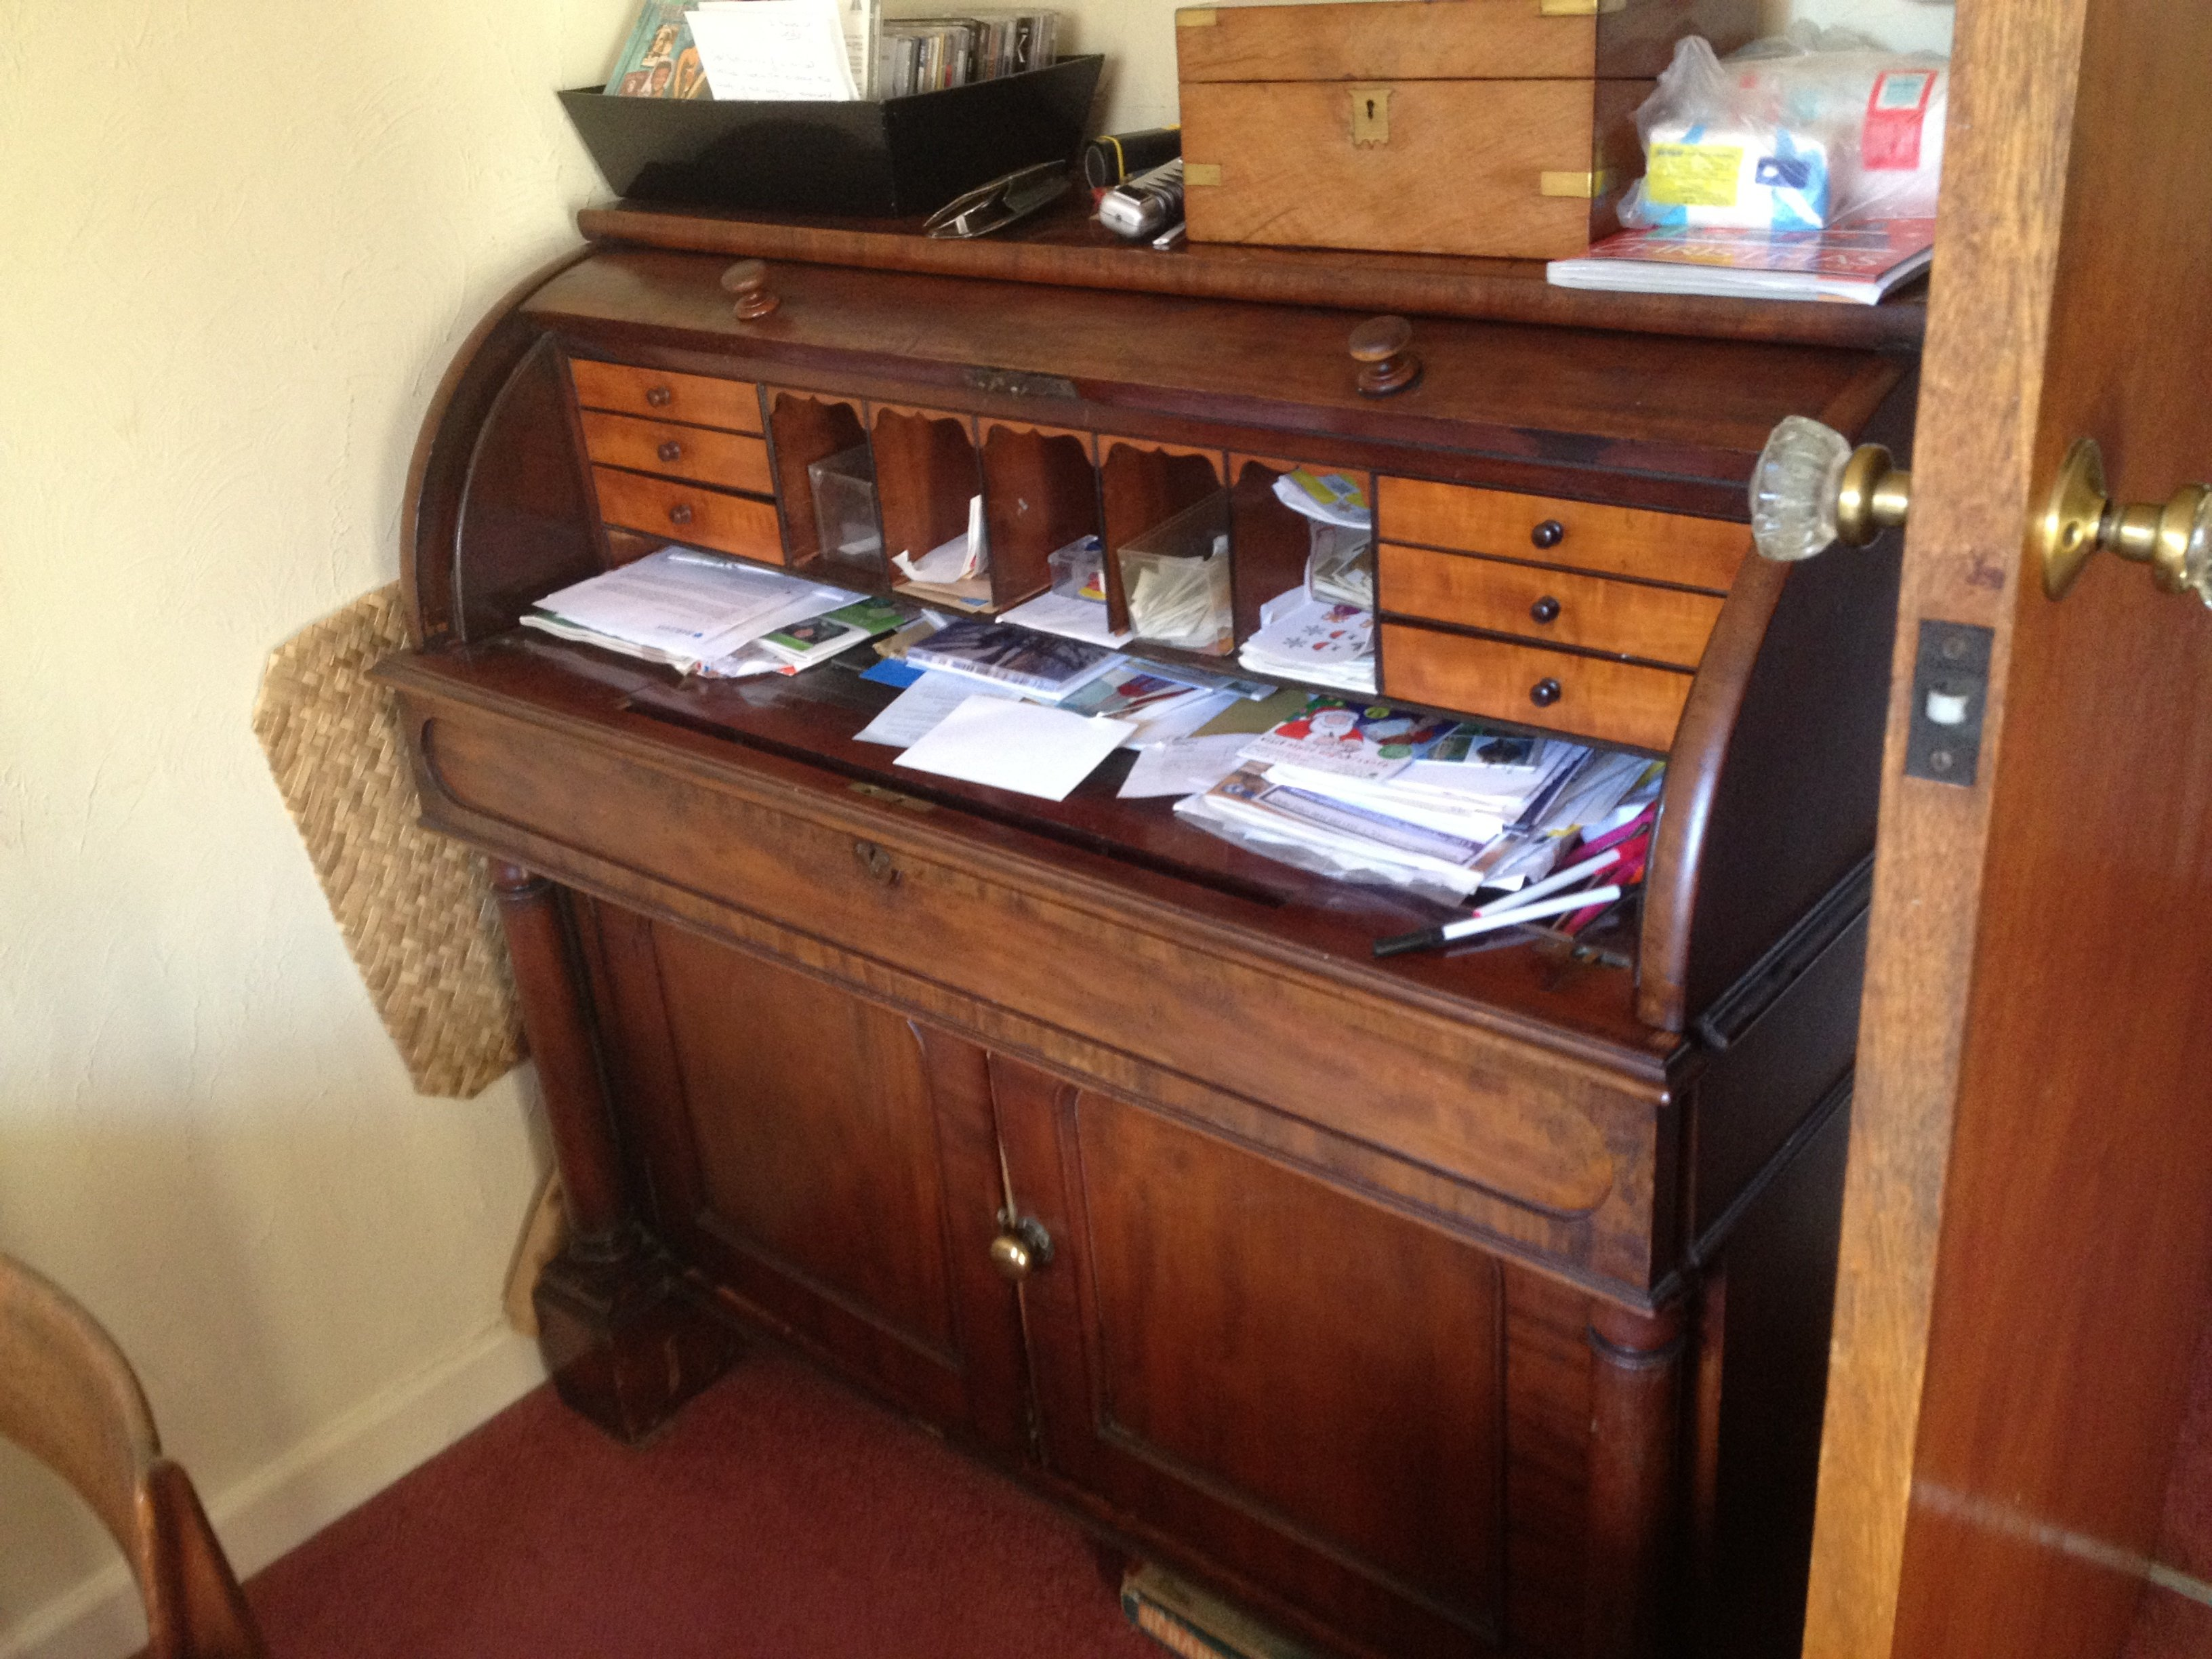 roll top desk with paperwork visible